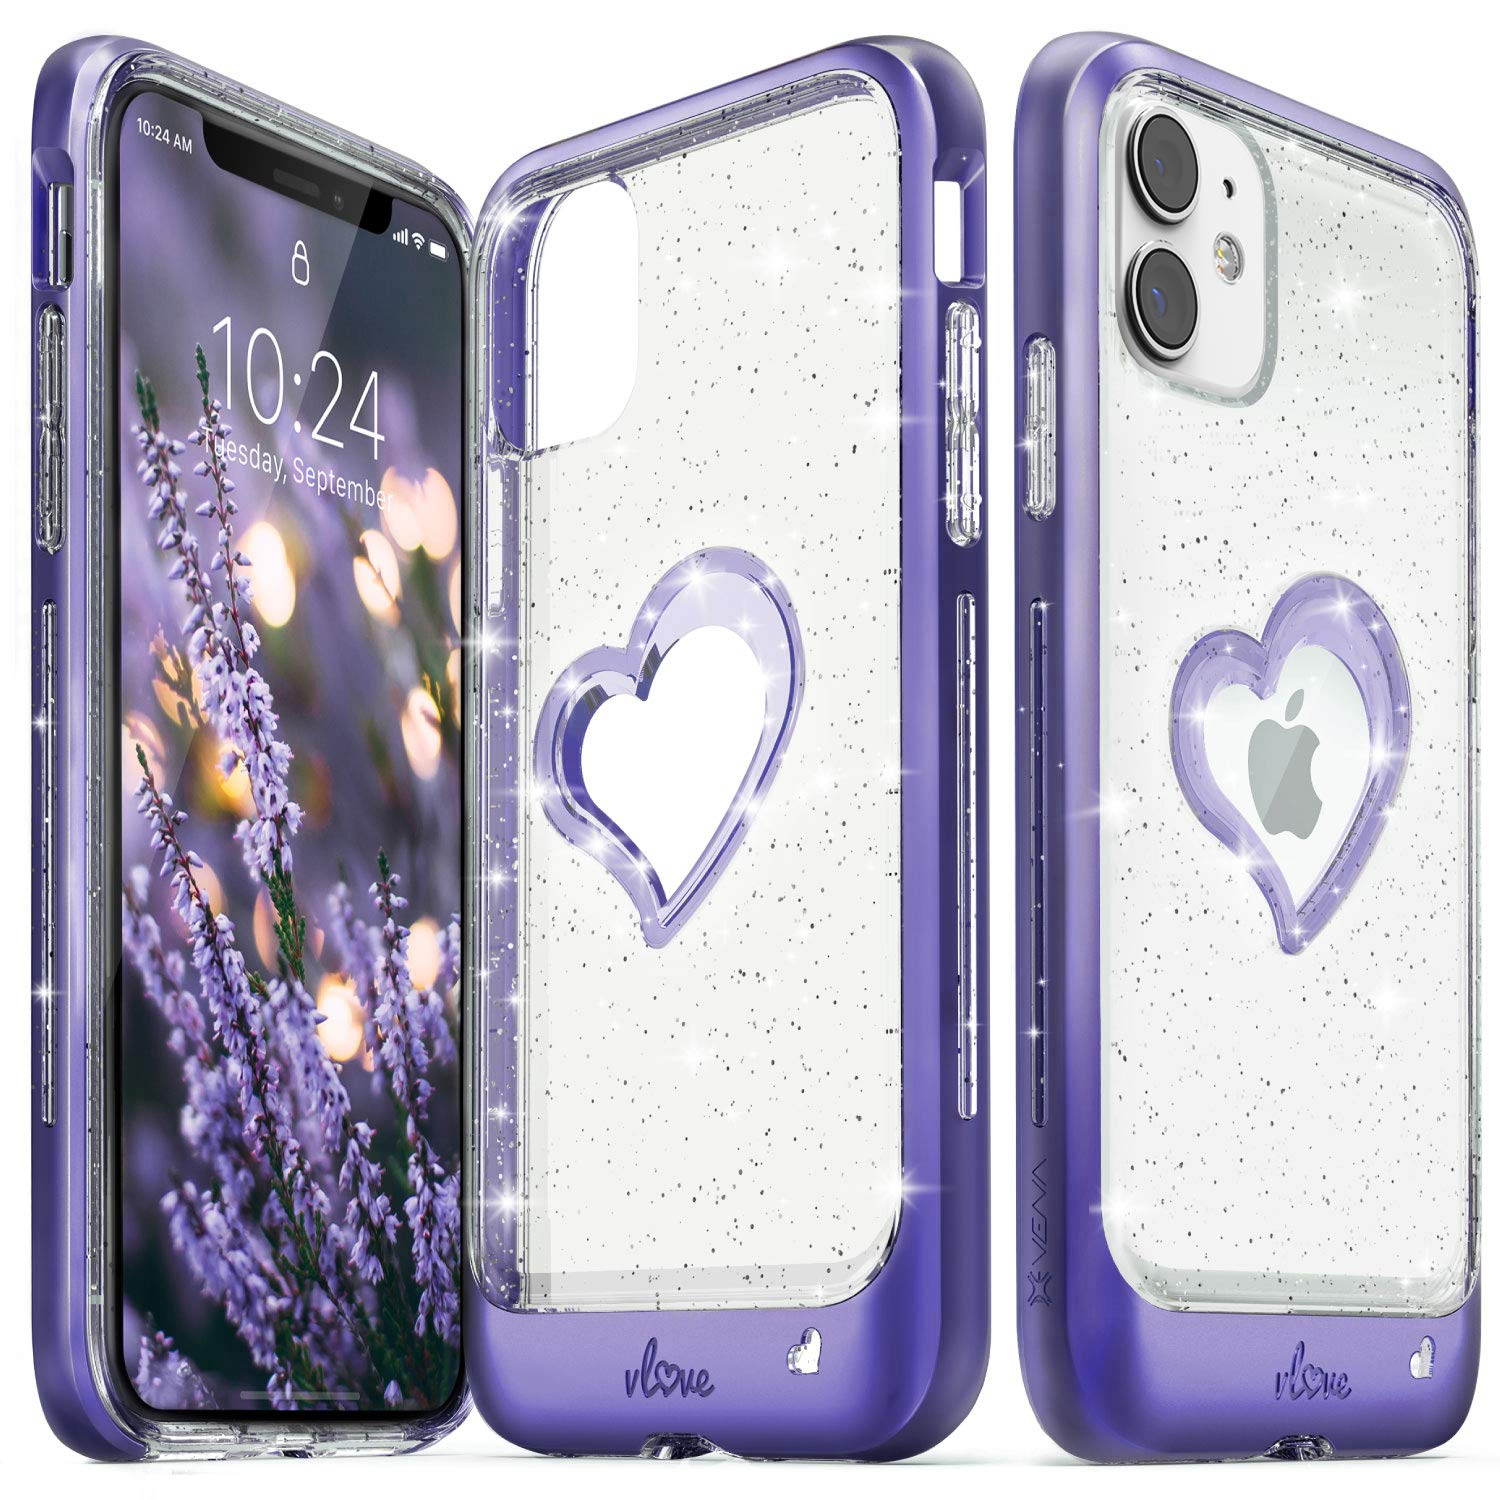 Vena iPhone 11 Glitter Case, vLove Glitter Heart Case Slim Dual Layer Protection Designed for iPhone 11 (6.1 inches) - Purple (PC) and Clear TPU with Glitter